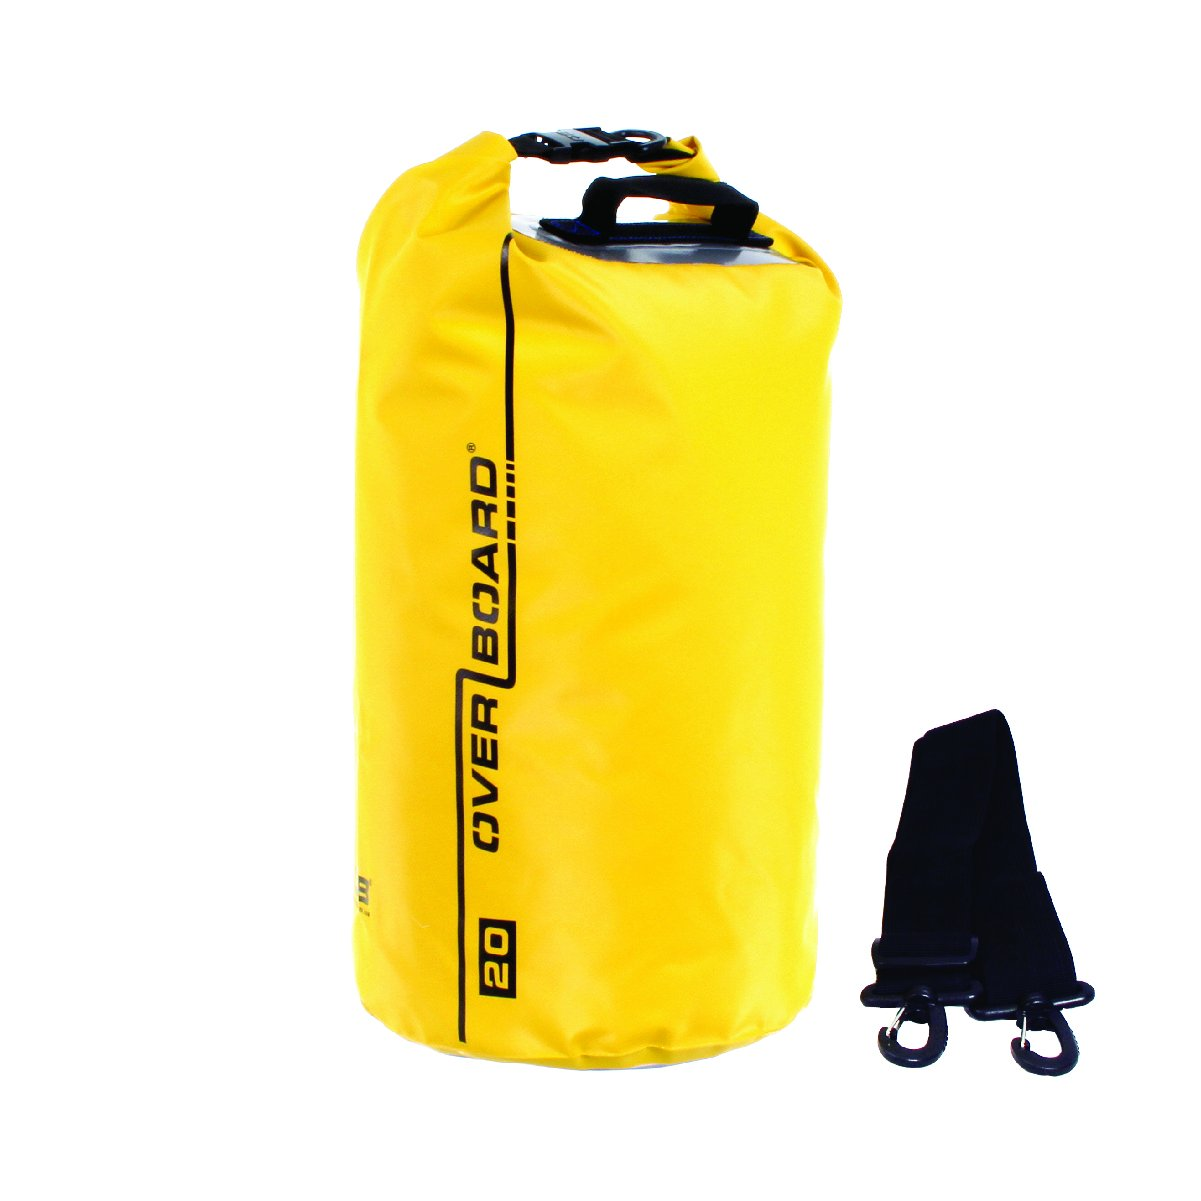 Overboard OB1005Y Waterproof Bolsa Impermeable Dry Tube - 20 Ltr - Amarillo product image